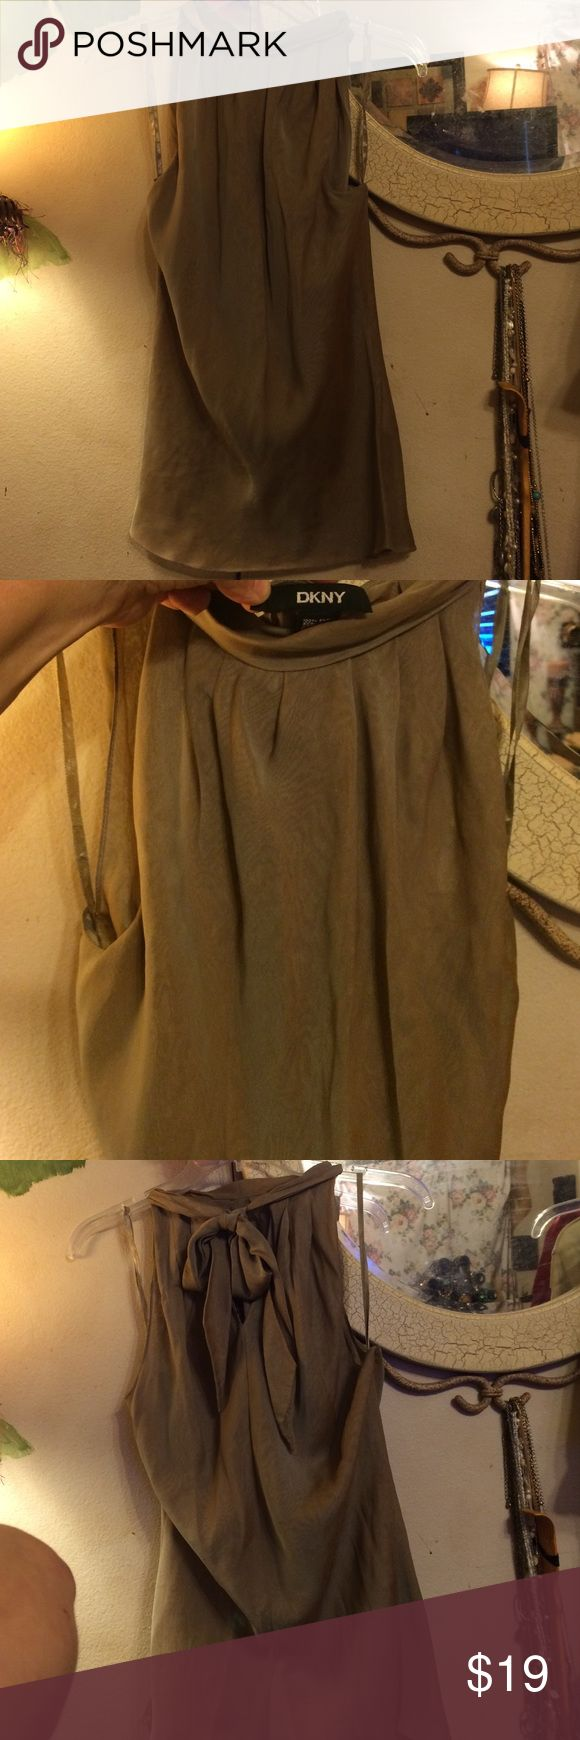 DKNY sleeveless beige blouse. DKNY beige sleeveless blouse with key hole design at back of neck where top is tied to complete the tops way it was designed to wear DKNY Tops Blouses